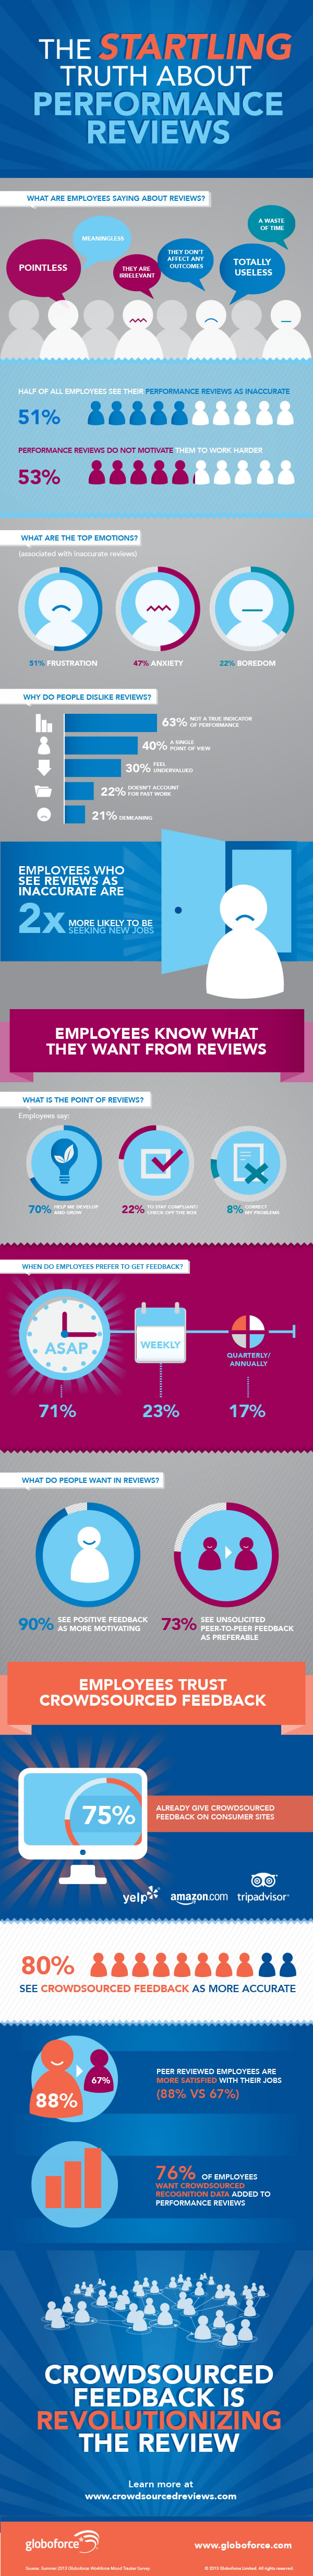 infographic-employee-reviews